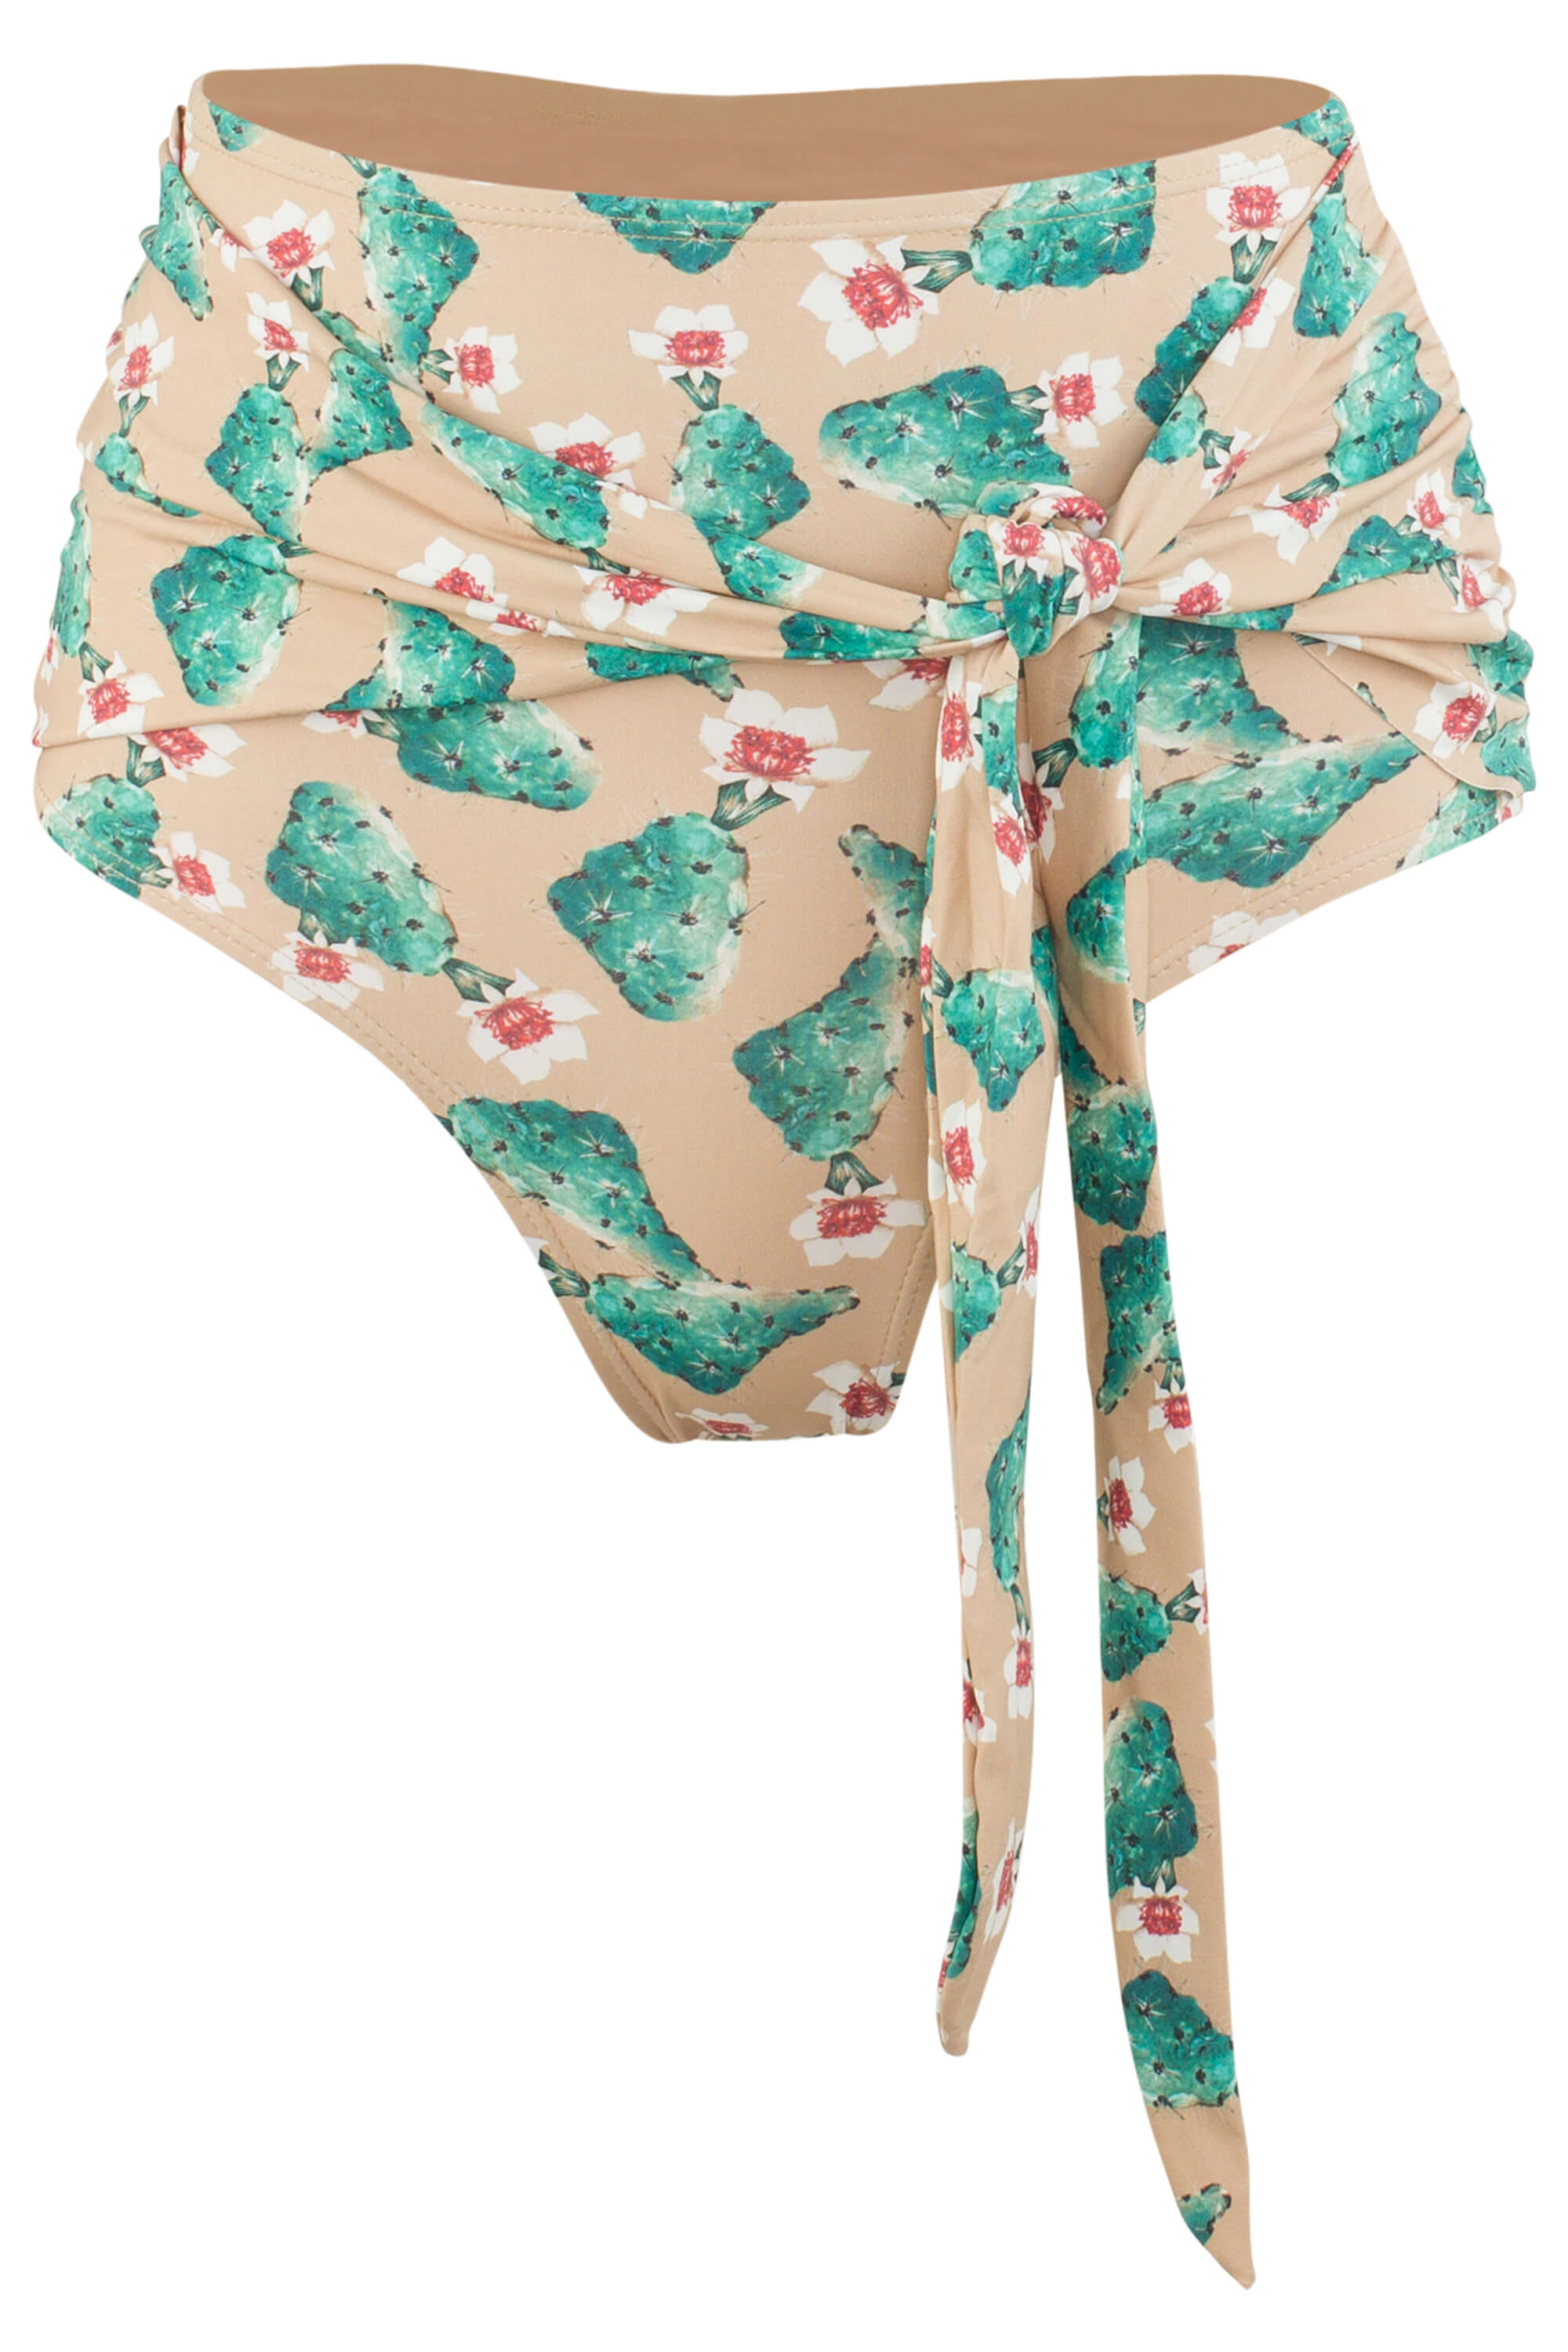 Giovanna high waist swimsuit bottom in Cactus